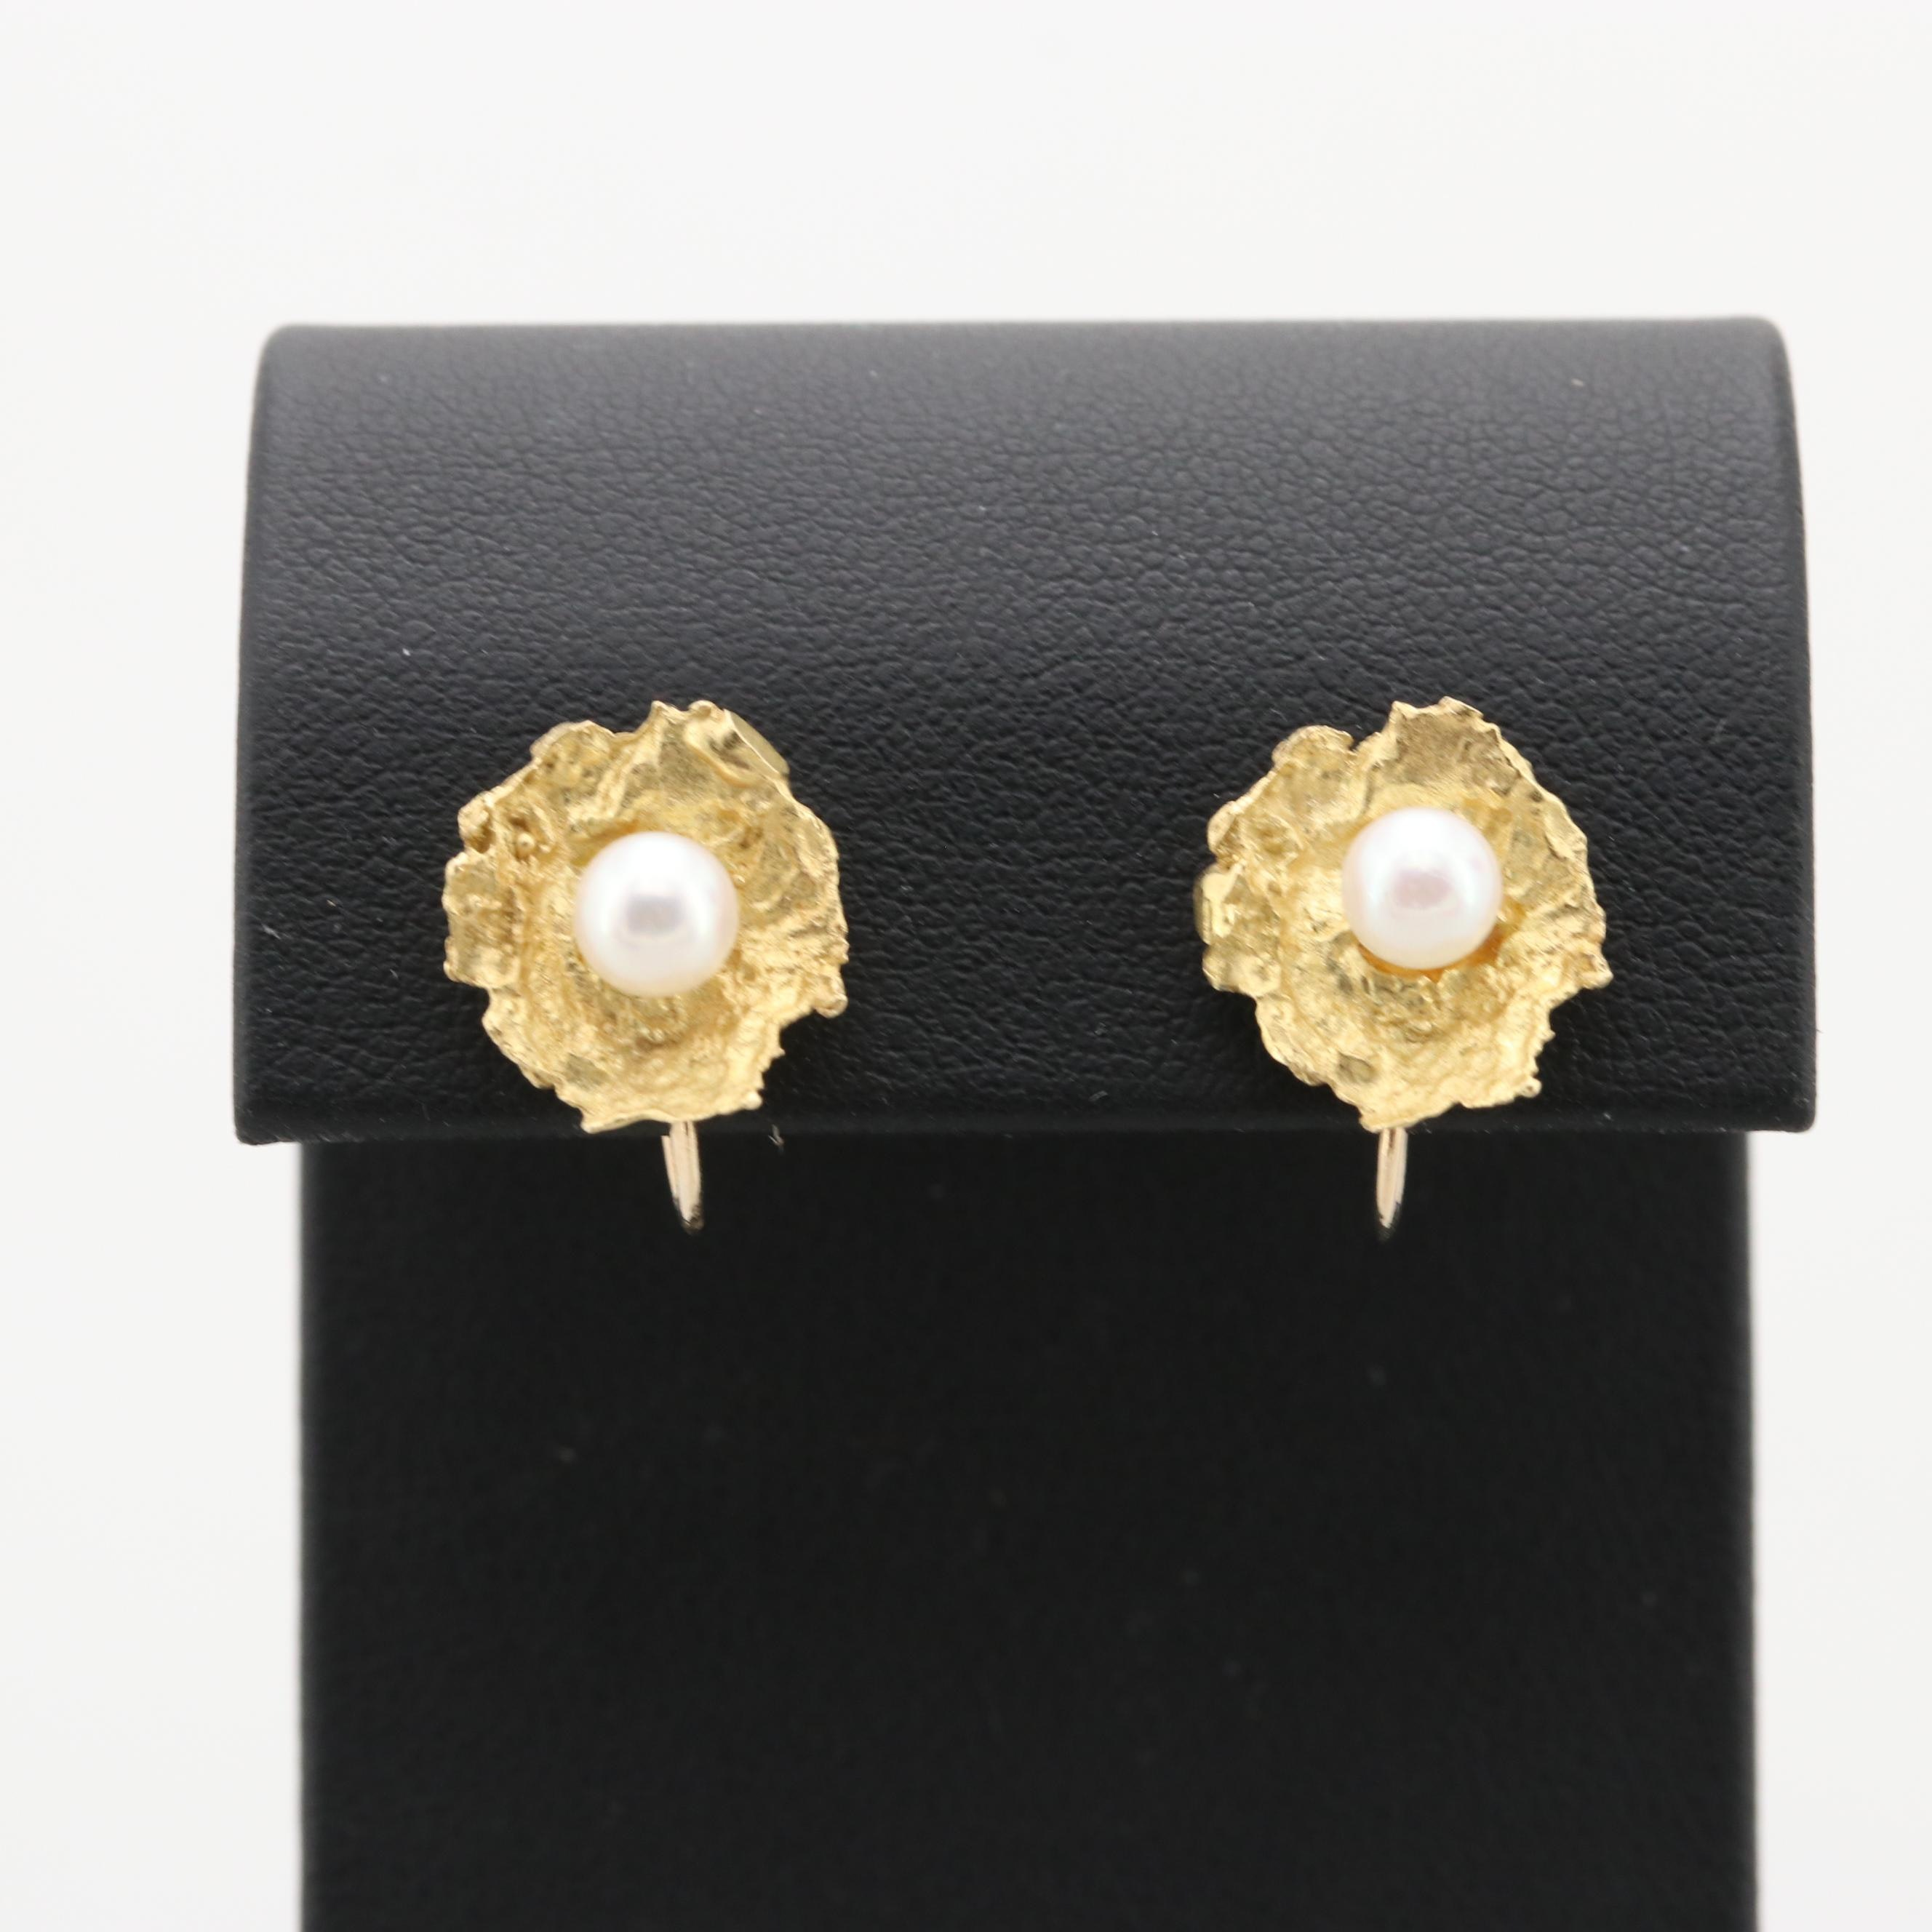 18K and 14K Yellow Gold Cultured Pearl Earrings